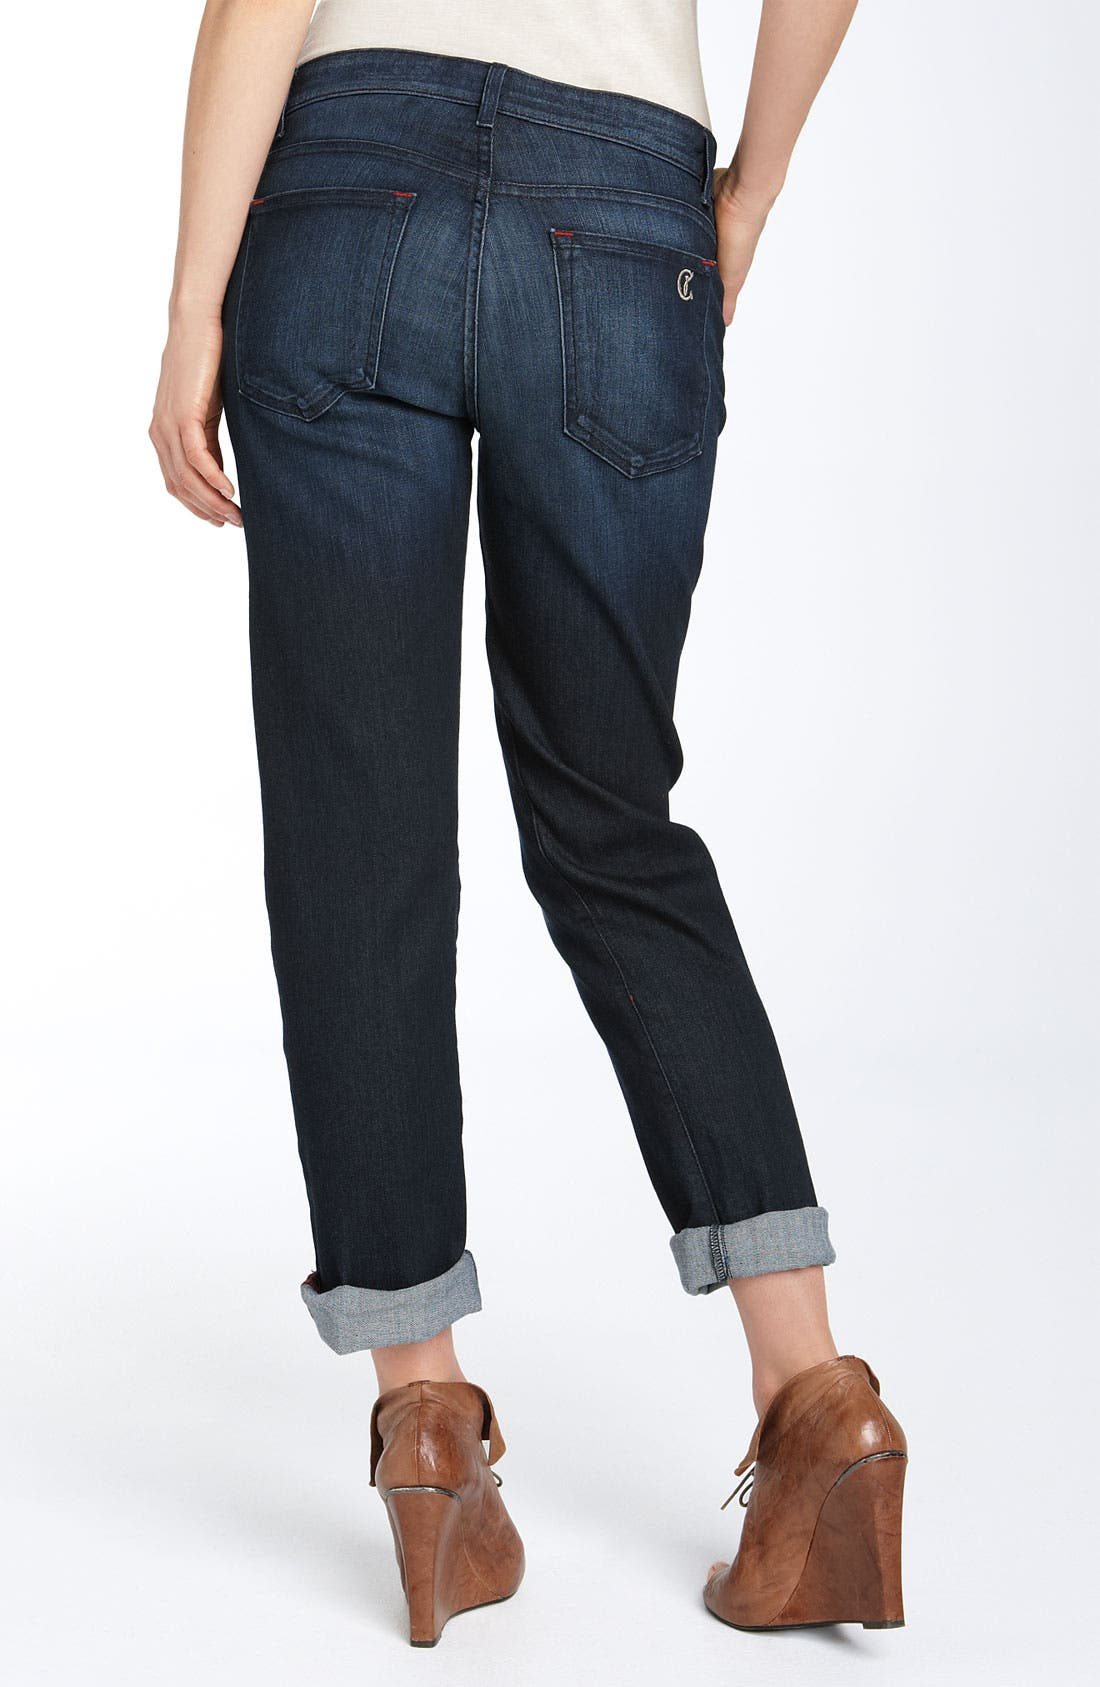 Alternate Image 1 Selected - CJ by Cookie Johnson 'Praise' Relaxed Cropped Jeans (Blue Iris Rinse Wash)